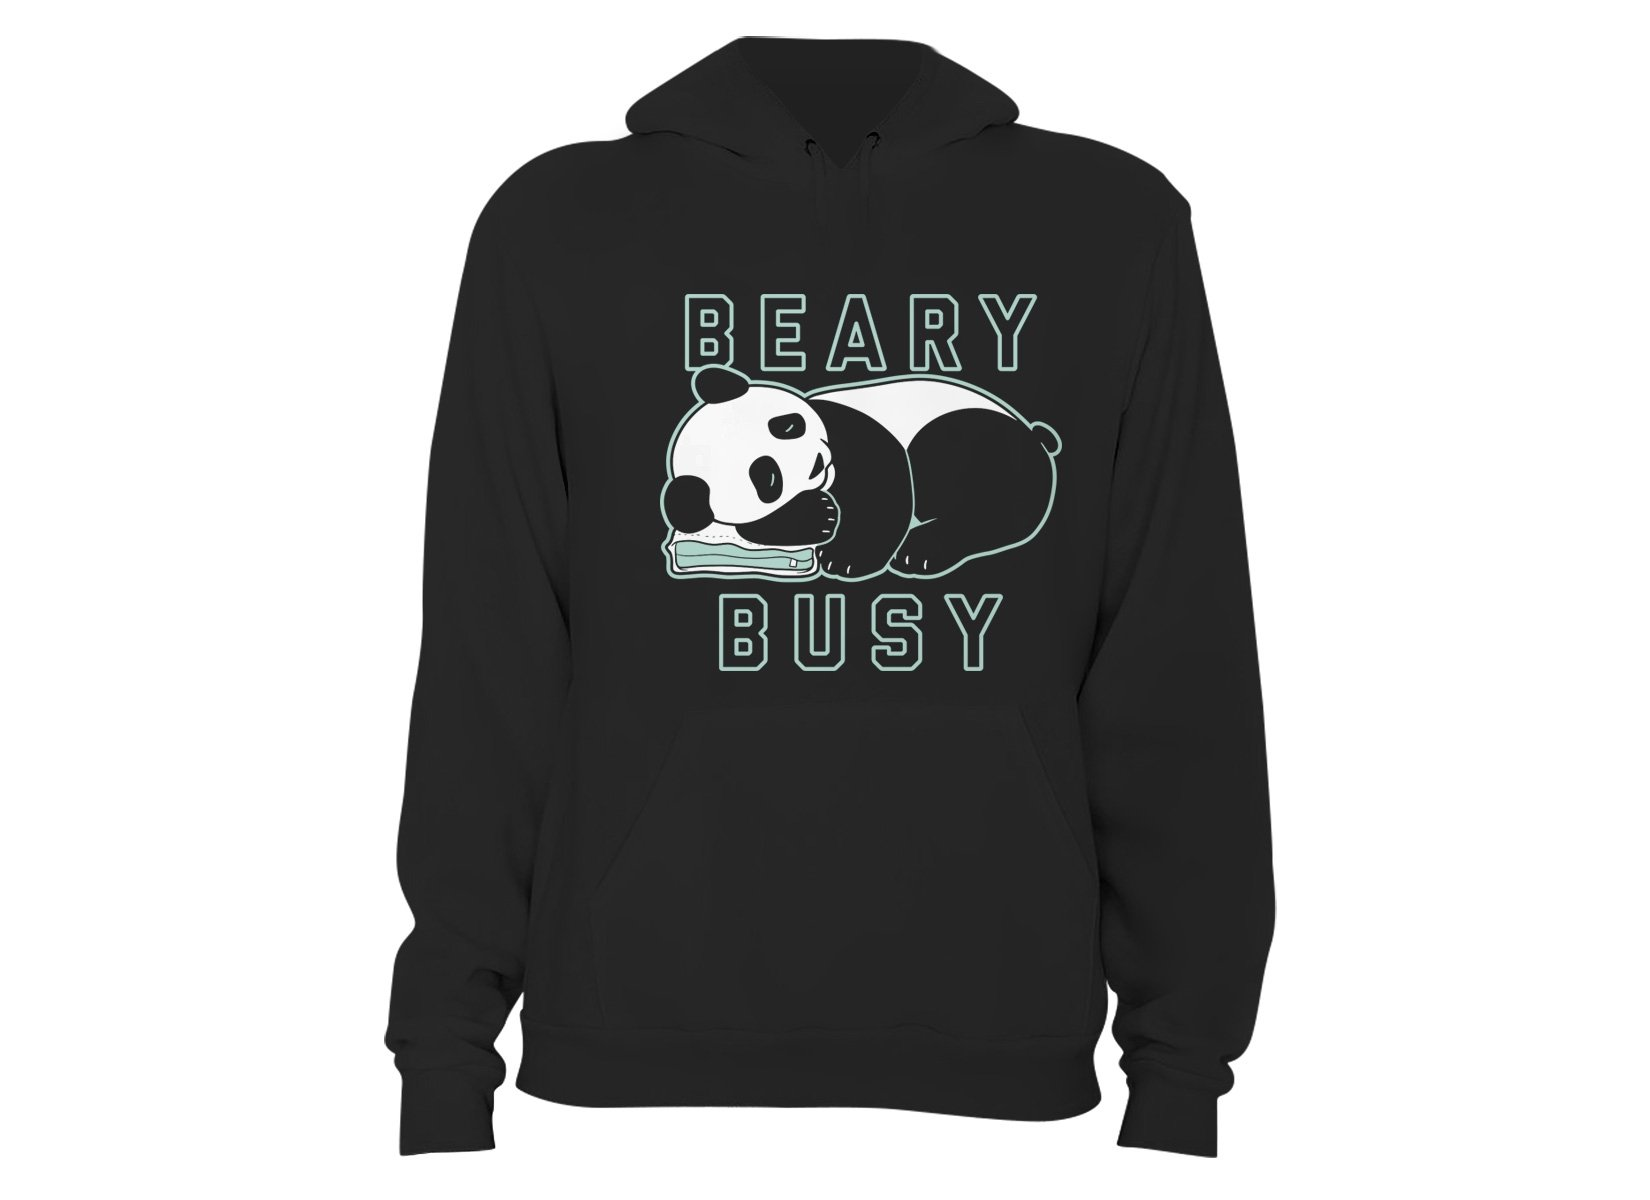 Beary Busy on Hoodie